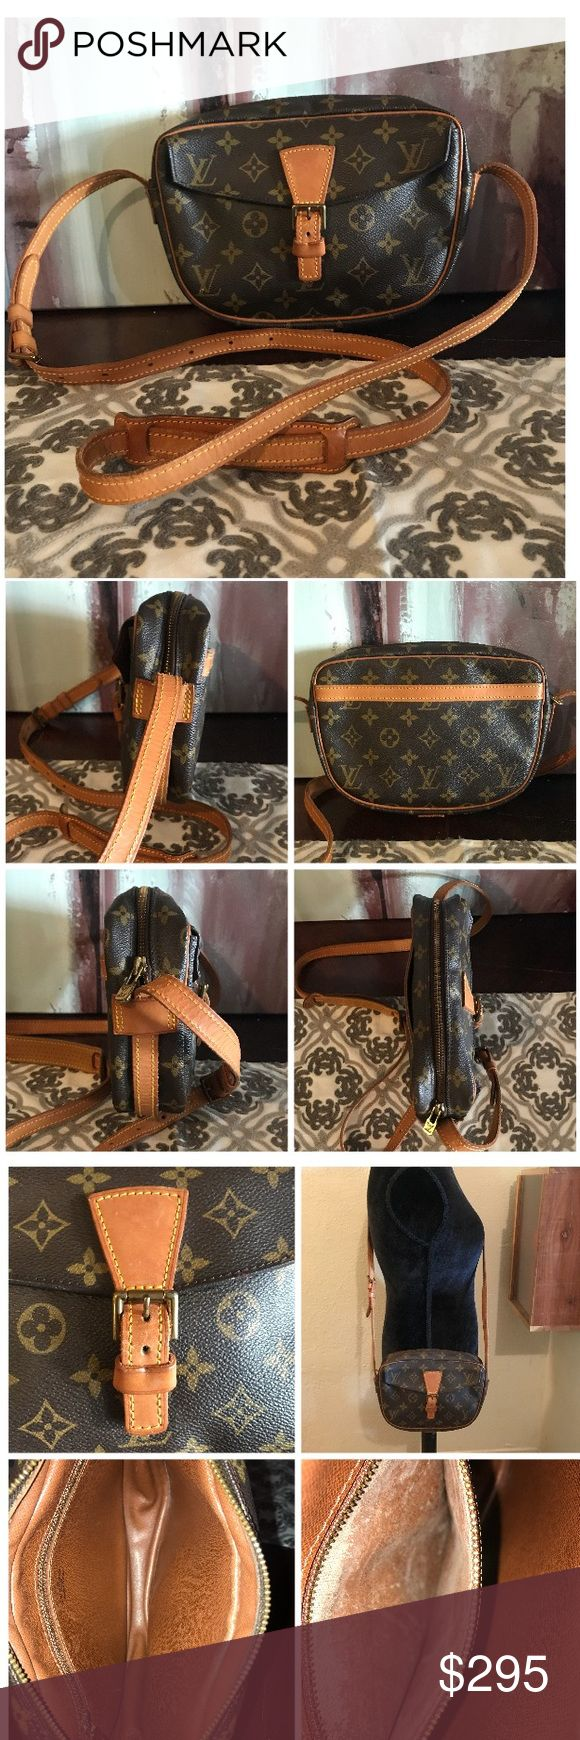 """Authentic Louis Vuitton Jeune Fille 100% Authentic Louis Vuitton Jeune Fille.  Monogram canvas has no scratches or tears.  Leather has nice even patina throughout.  No cracks and stitching is good.  Strap has minor cracks and stitching is good.  No major flaws.  Beautiful.  Hardware has tarnish.  Inside is clean.  Pockets have peeled but not sticky.  Definitely usable.  W9.05xH6.29xD1.96"""".  I do not trade. Louis Vuitton Bags Crossbody Bags"""